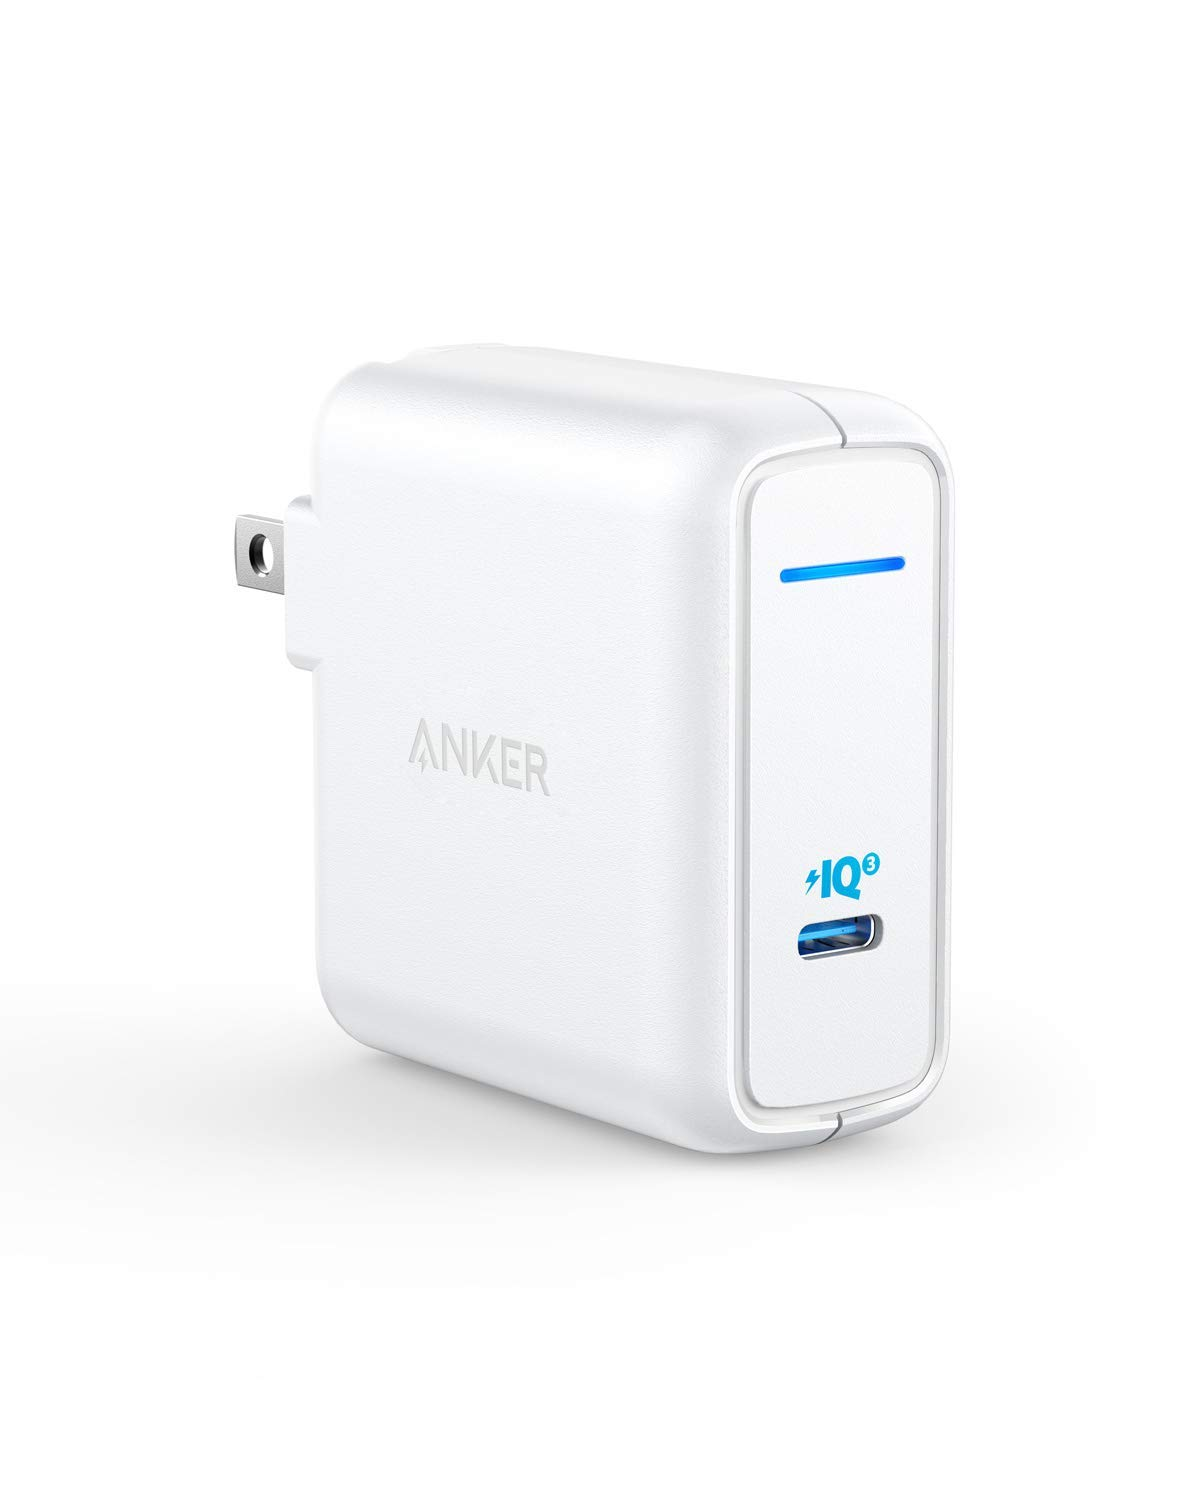 Anker 60W [PowerIQ 3.0 & GaN] Power Delivery USB C Charger, PowerPort Atom III 60W Ultra Compact Type C Charger for USB-C Laptops, MacBook Pro/Air, iPad Pro, iPhone XR/XS/Max/8, Galaxy, Pixel by Anker